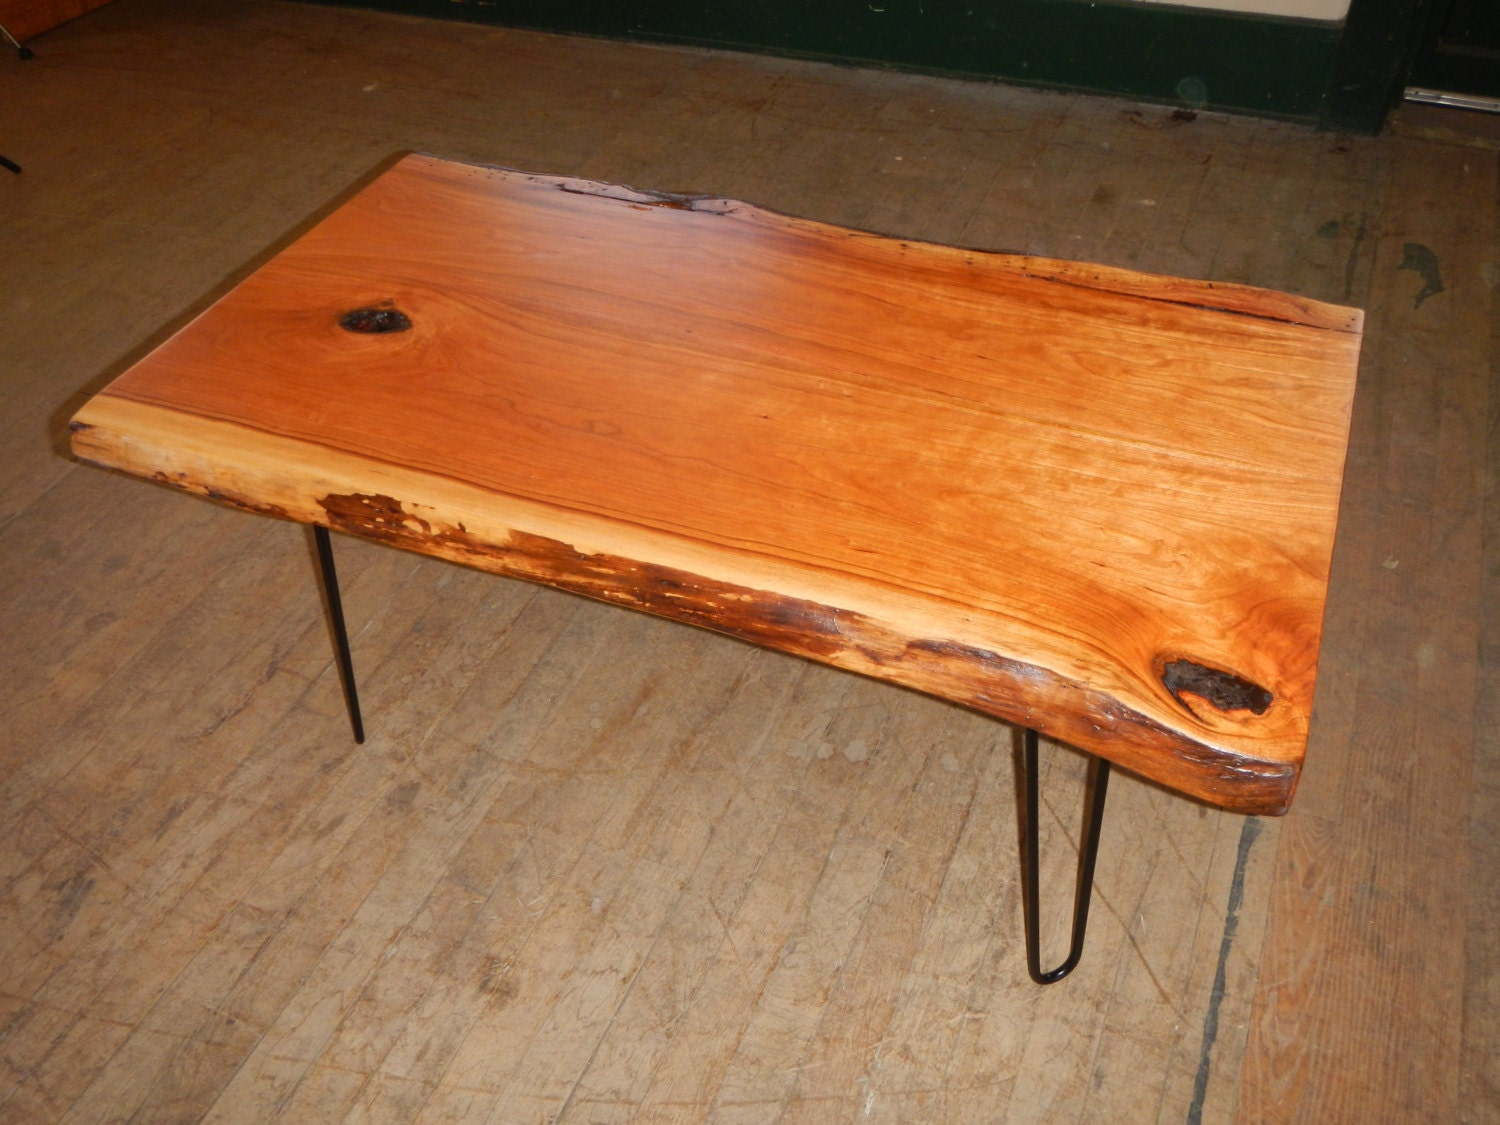 soldcherry wood live edge coffee table with hairpin legs. Black Bedroom Furniture Sets. Home Design Ideas